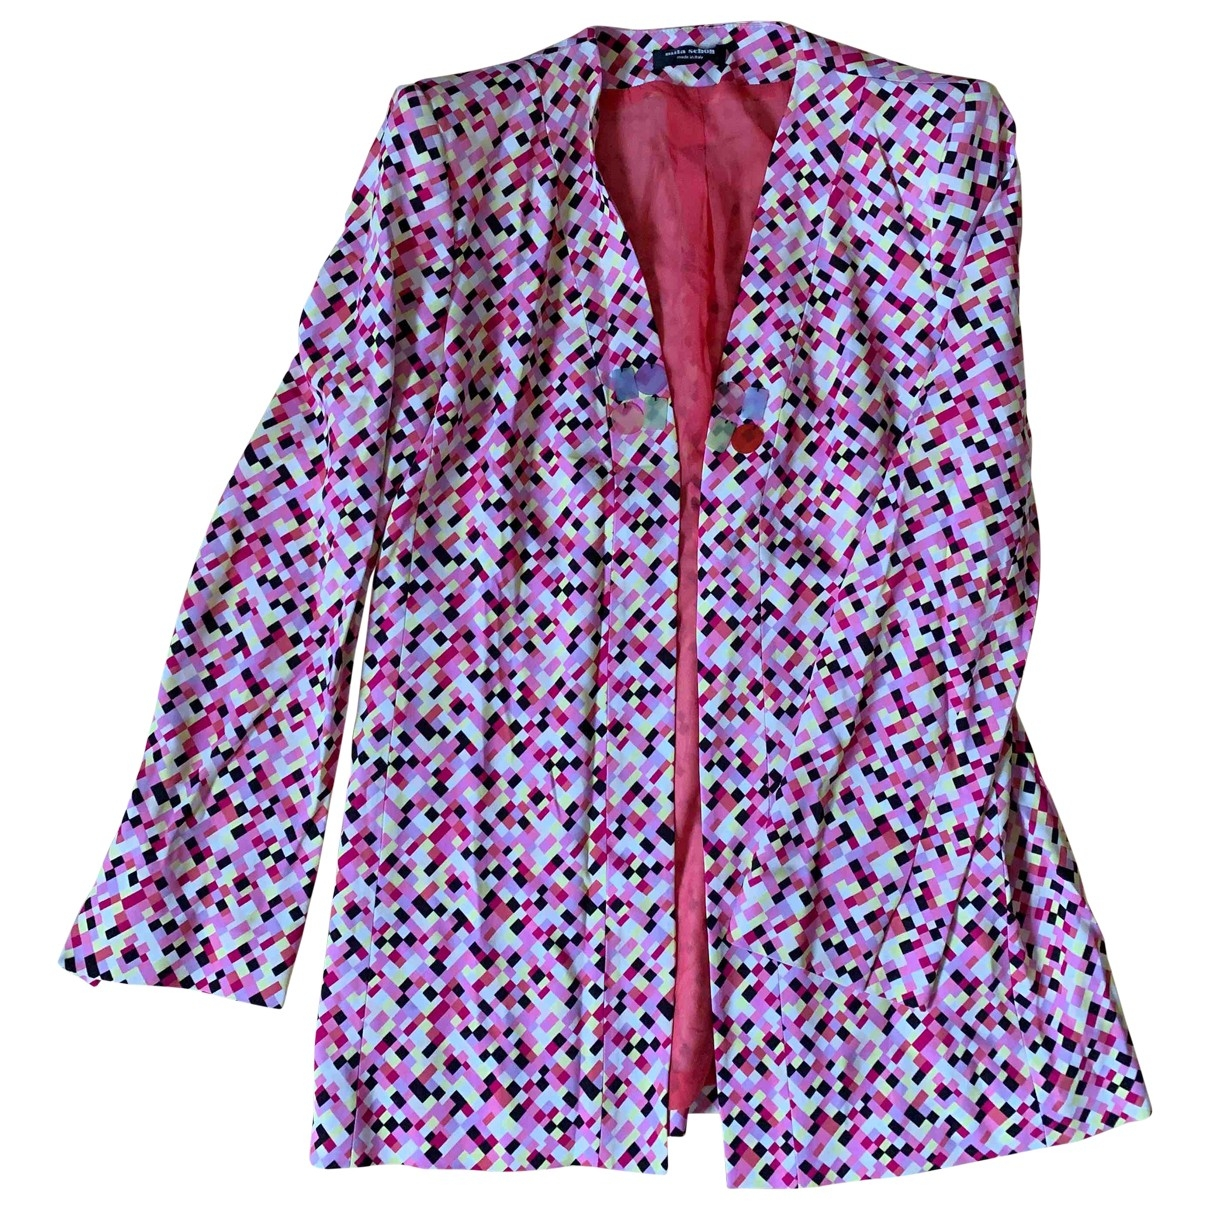 Mila Schön Concept \N Multicolour jacket for Women 42 IT